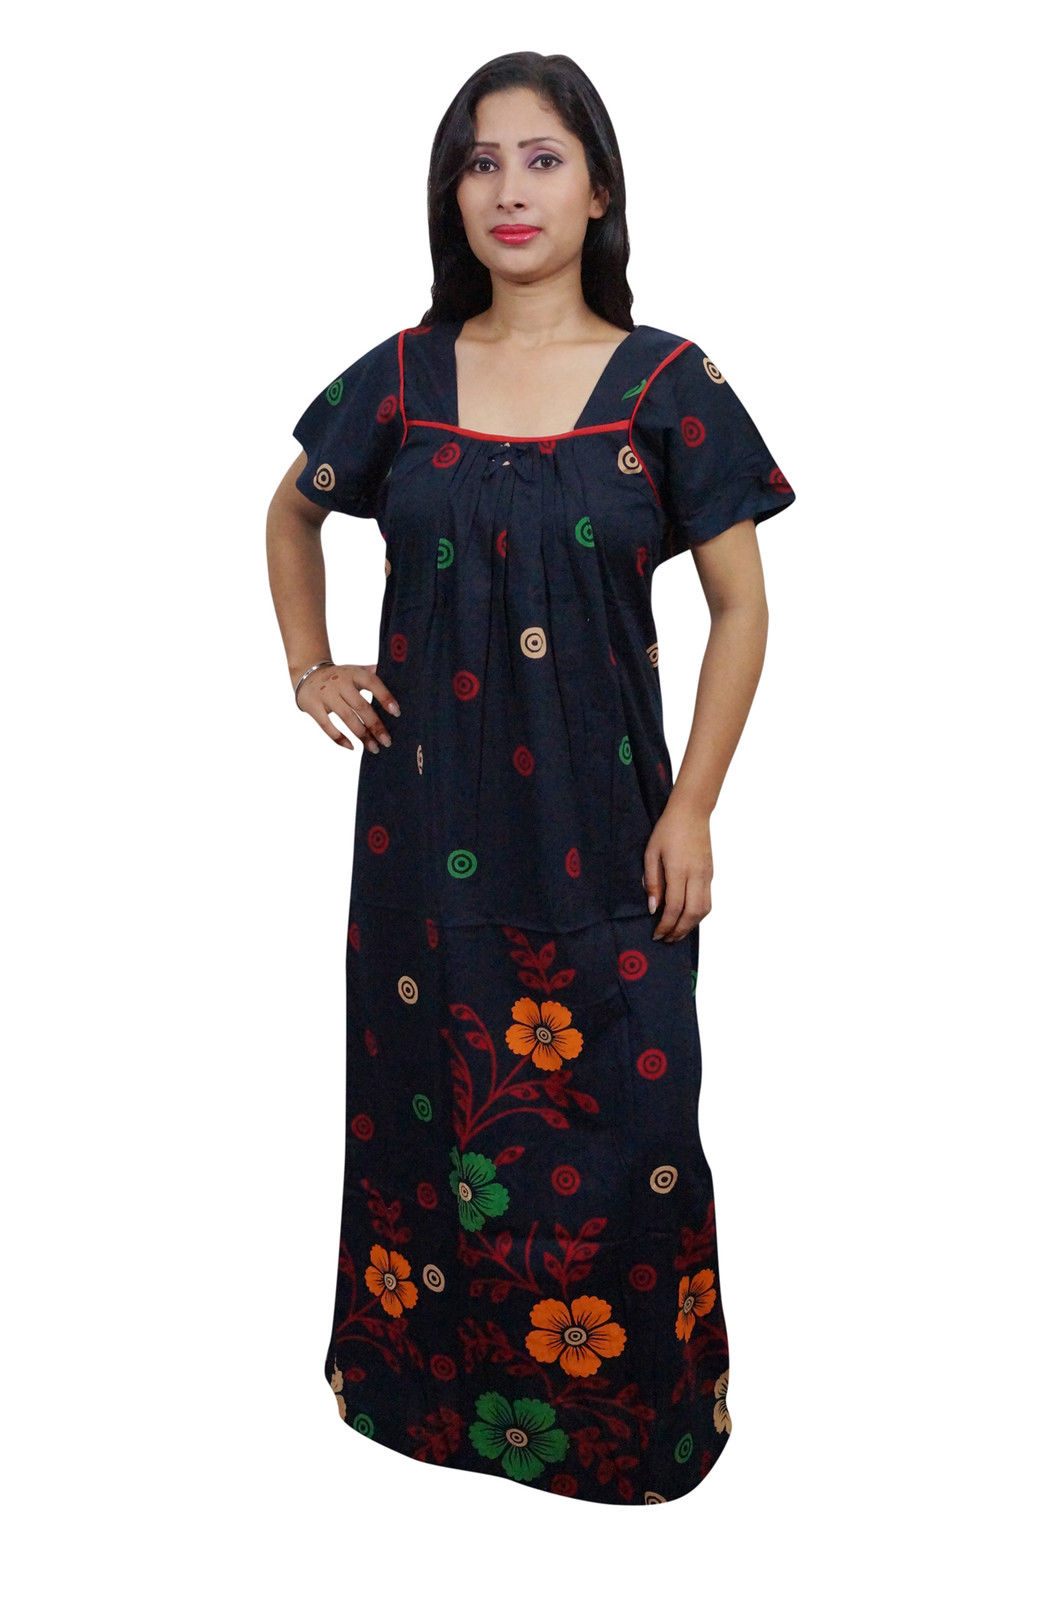 d9ada91e8e Enjoy your sleep time with this printed night wear gown for women from  Indiatrendzs. Made from Cotton